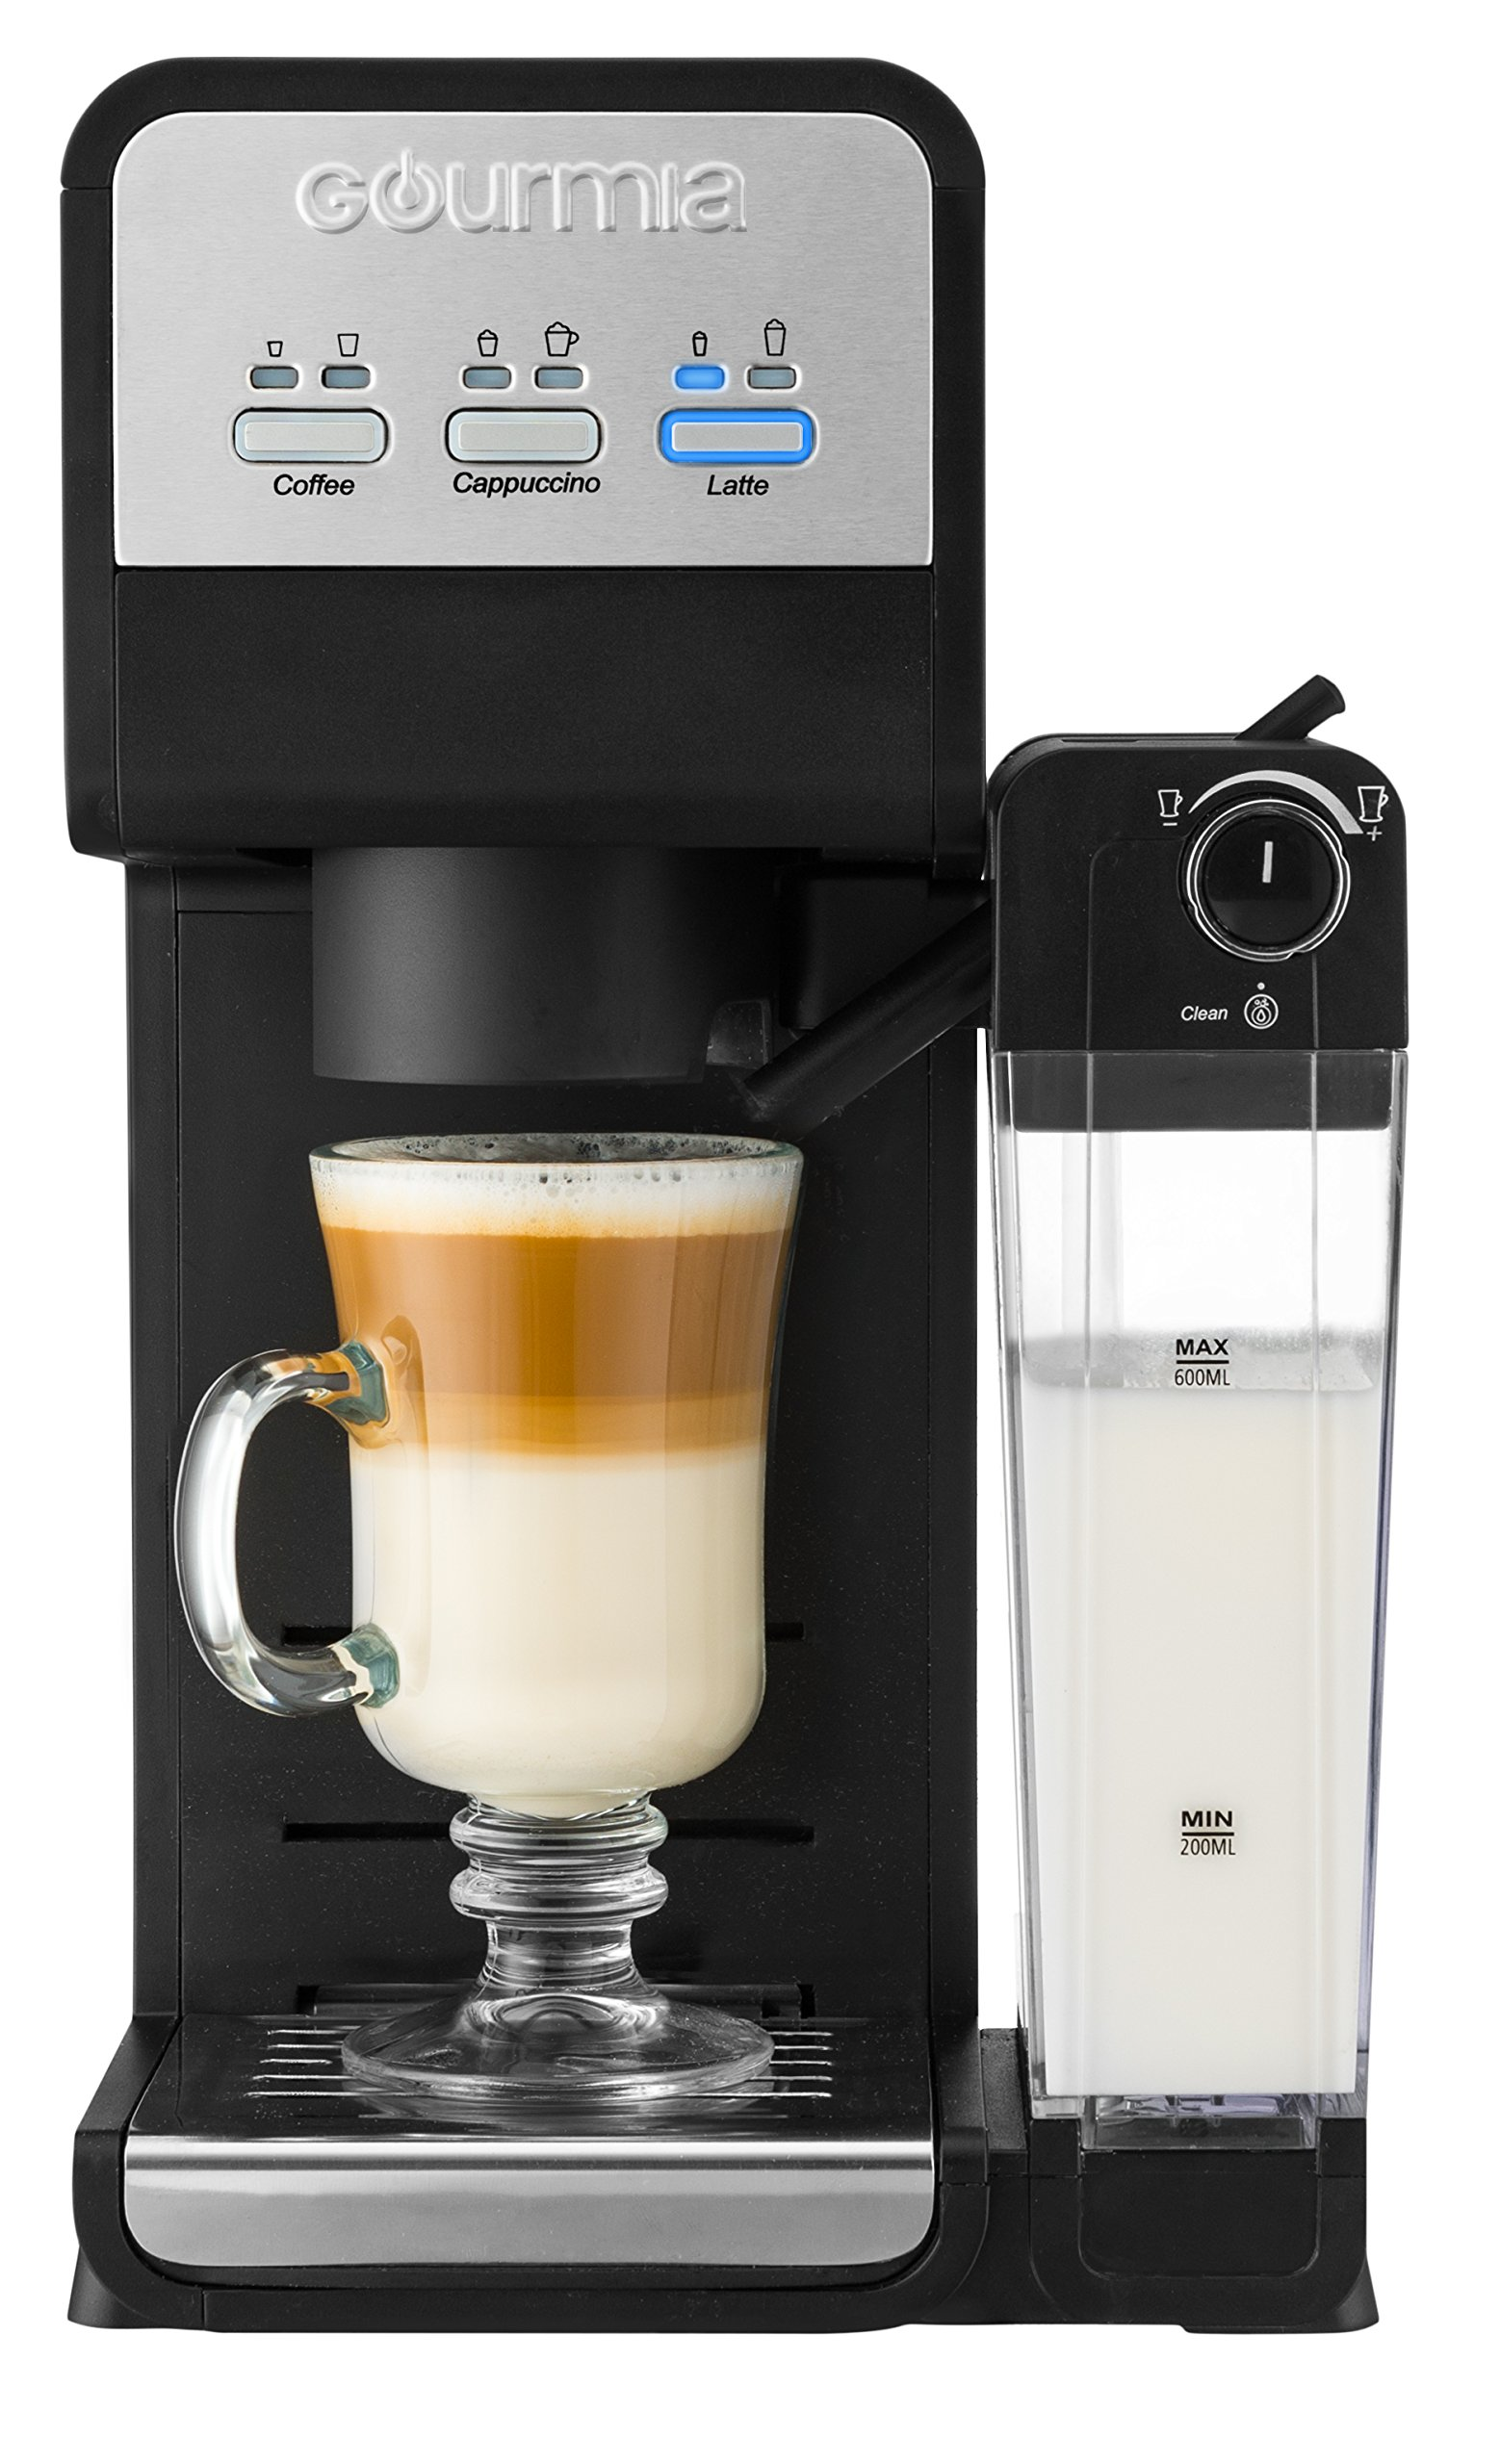 Gourmia GCM4000 3 In 1 Single Serve -1 Touch -K-Cup Compatible Coffee Cappuccino & Latte Maker -Built-In Milk Frother -Steams Milk Straight in Cup -1450W -Black